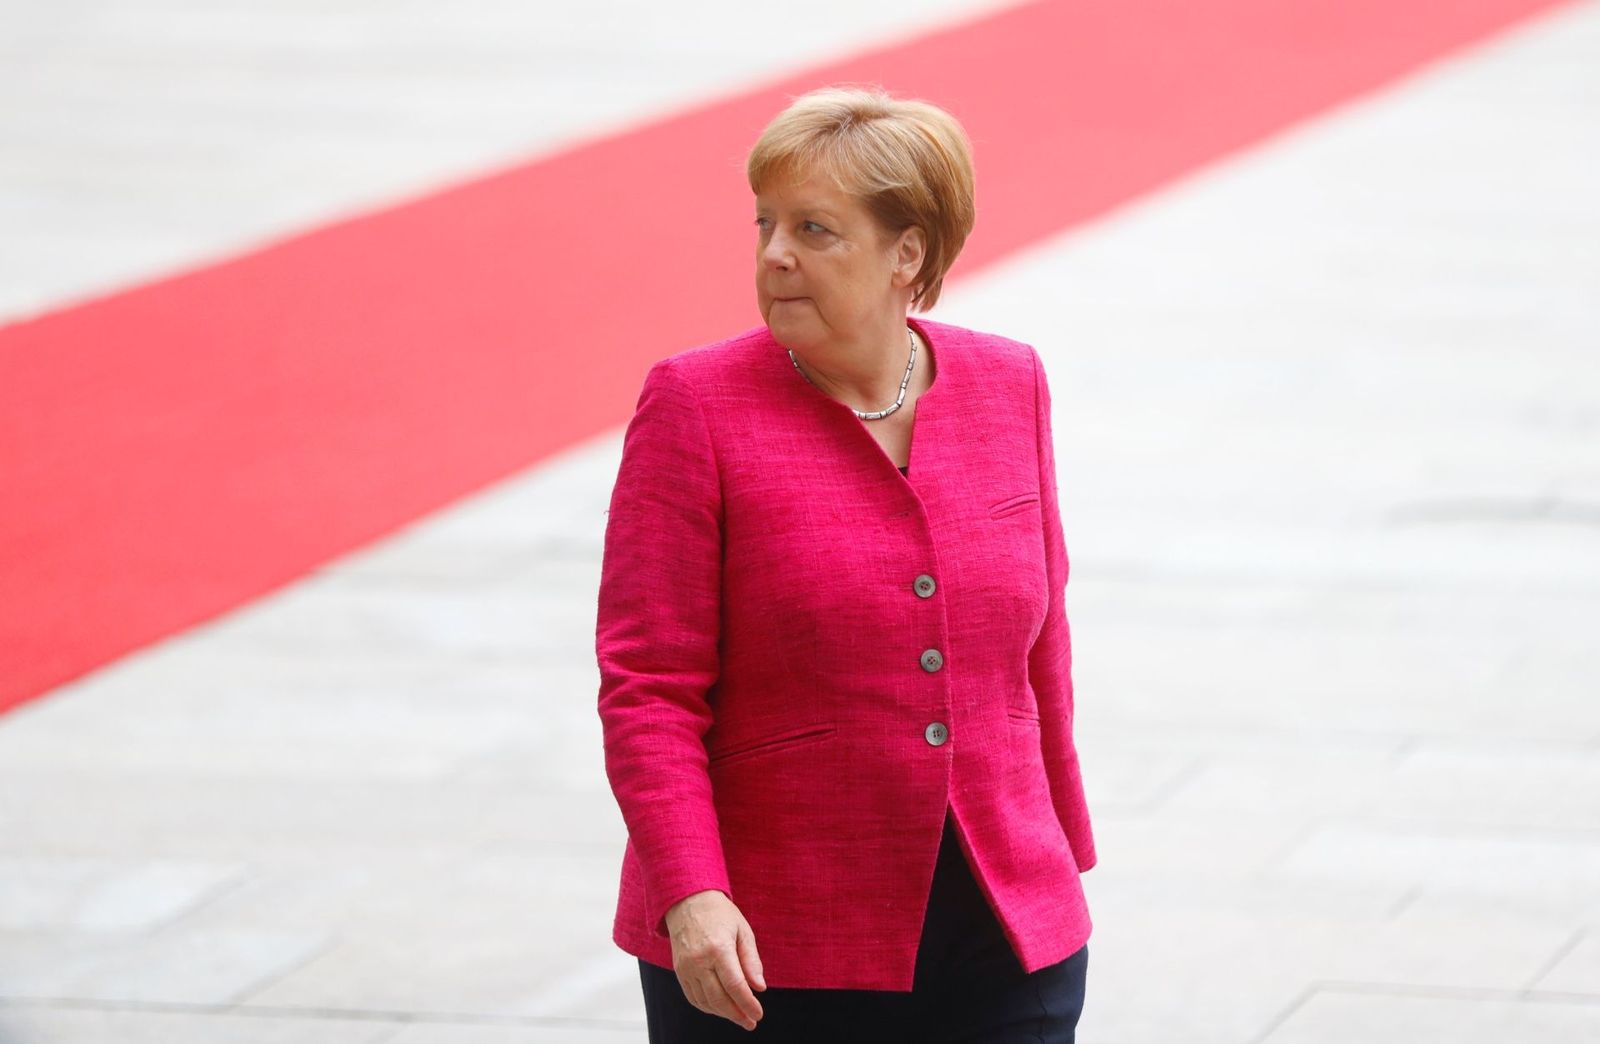 German Chancellor Angela Merkel looks on as she welcomes Spanish Prime Minister Pedro Sanchez at the chancellery in Berlin